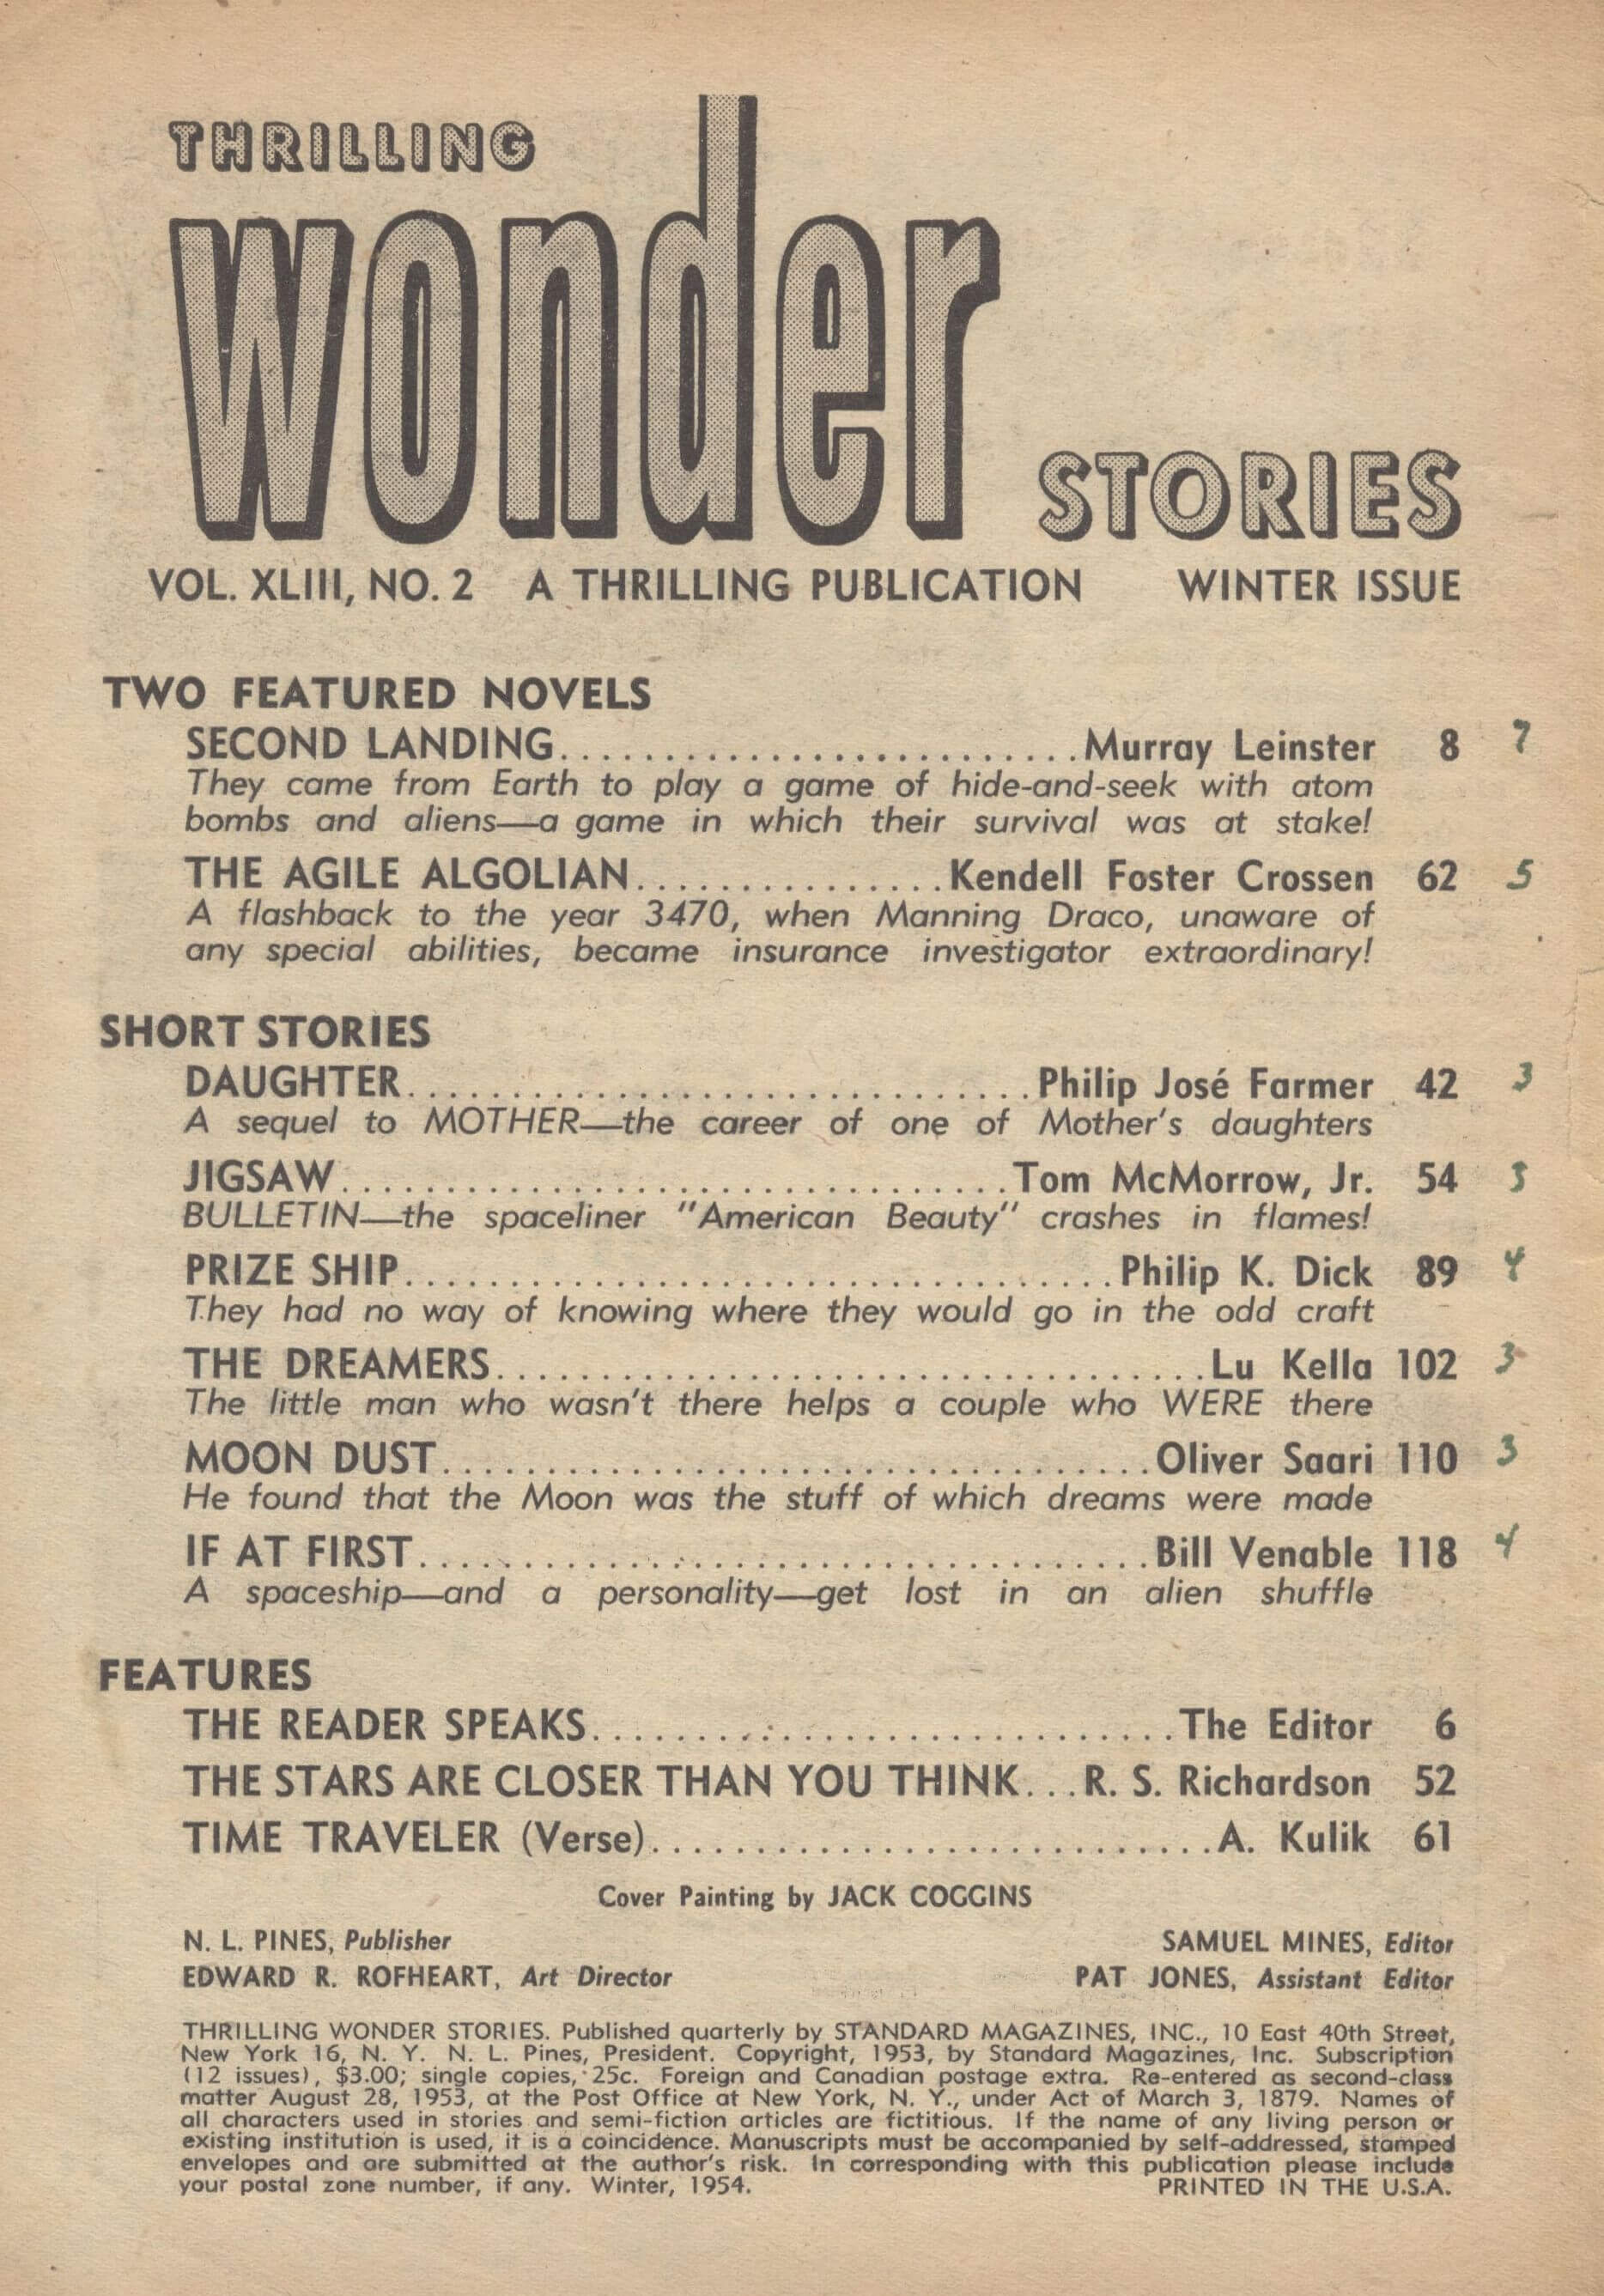 Thrilling Wonder Stories, Winter 1954 - Table of Contents